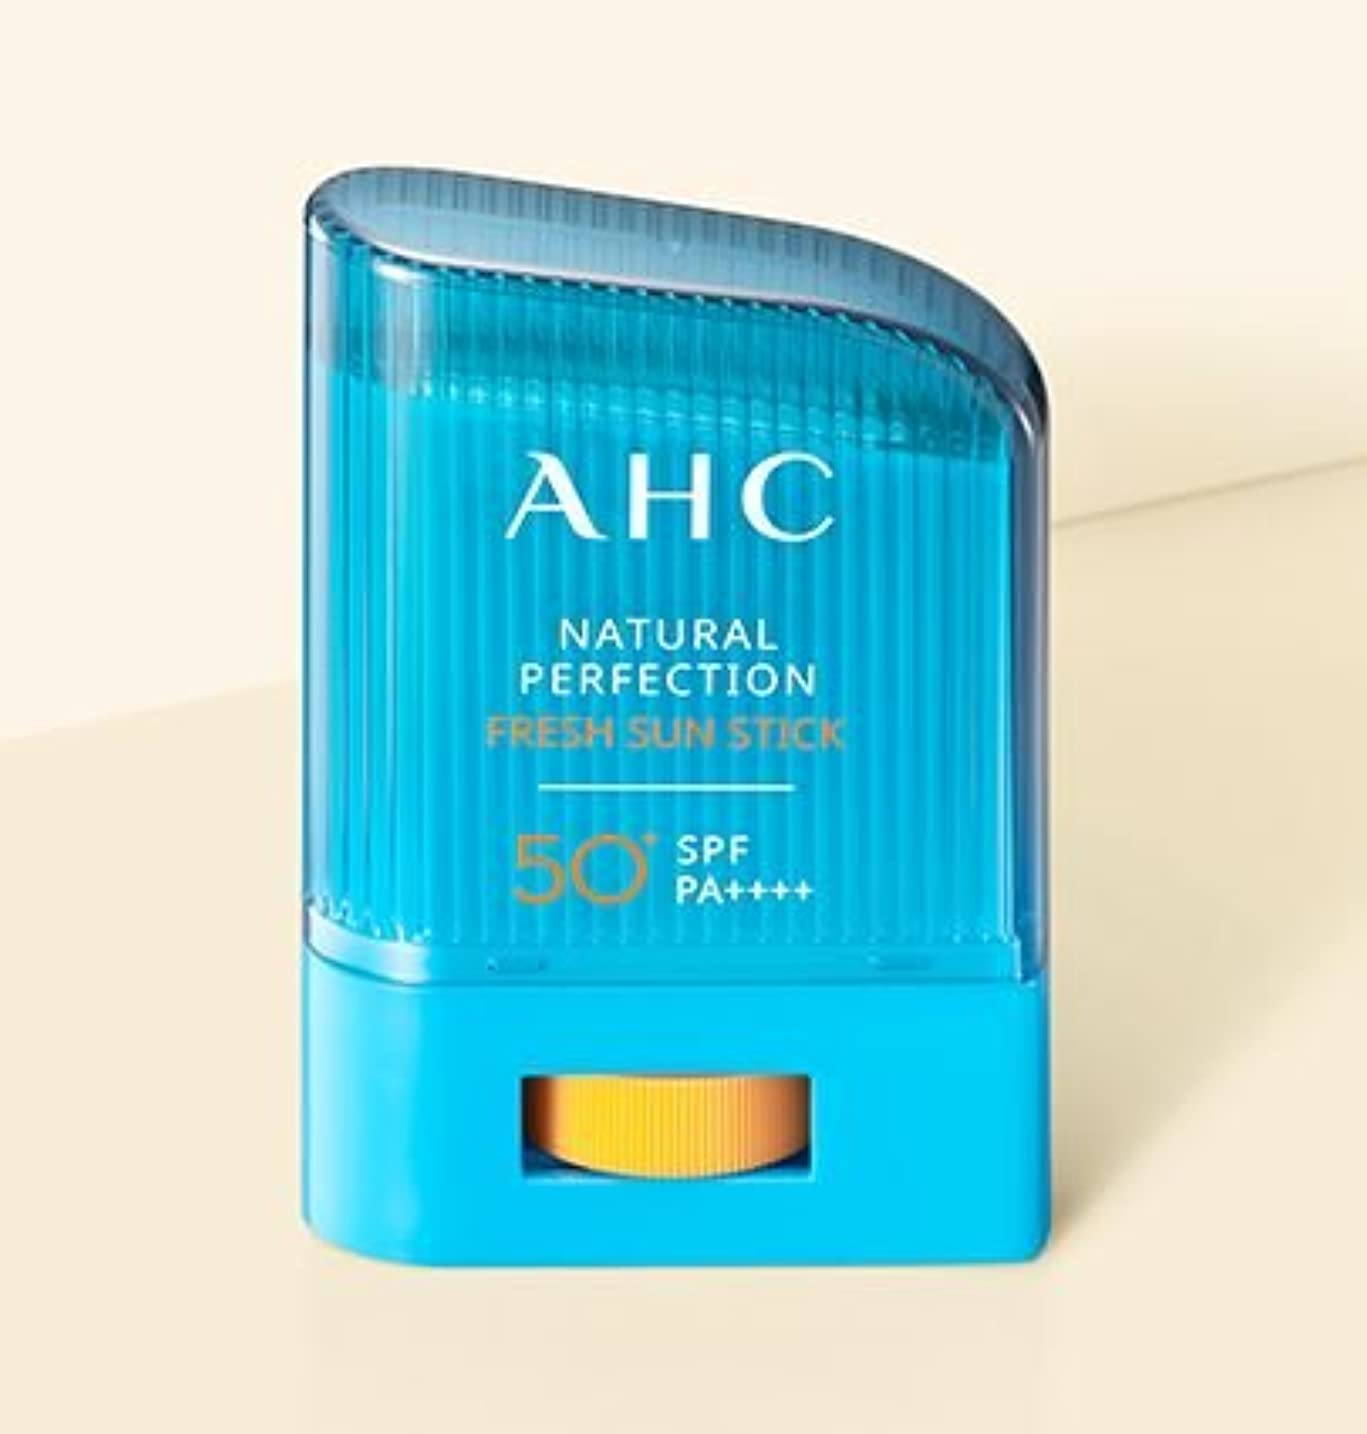 処方する地球学習AHC Natural perfection fresh sun stick (14g) [並行輸入品]